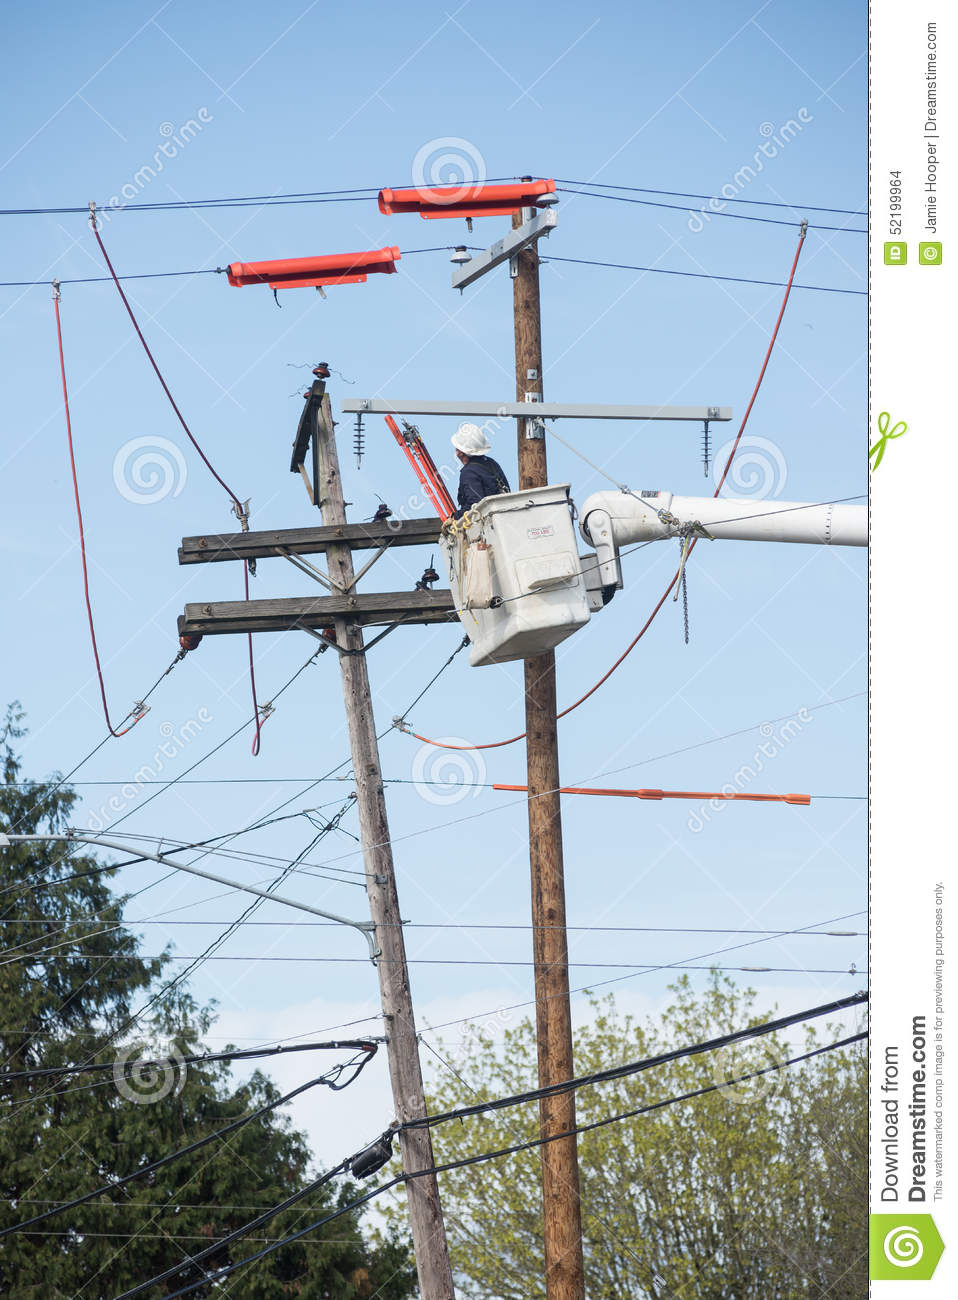 Replacing the Power Pole